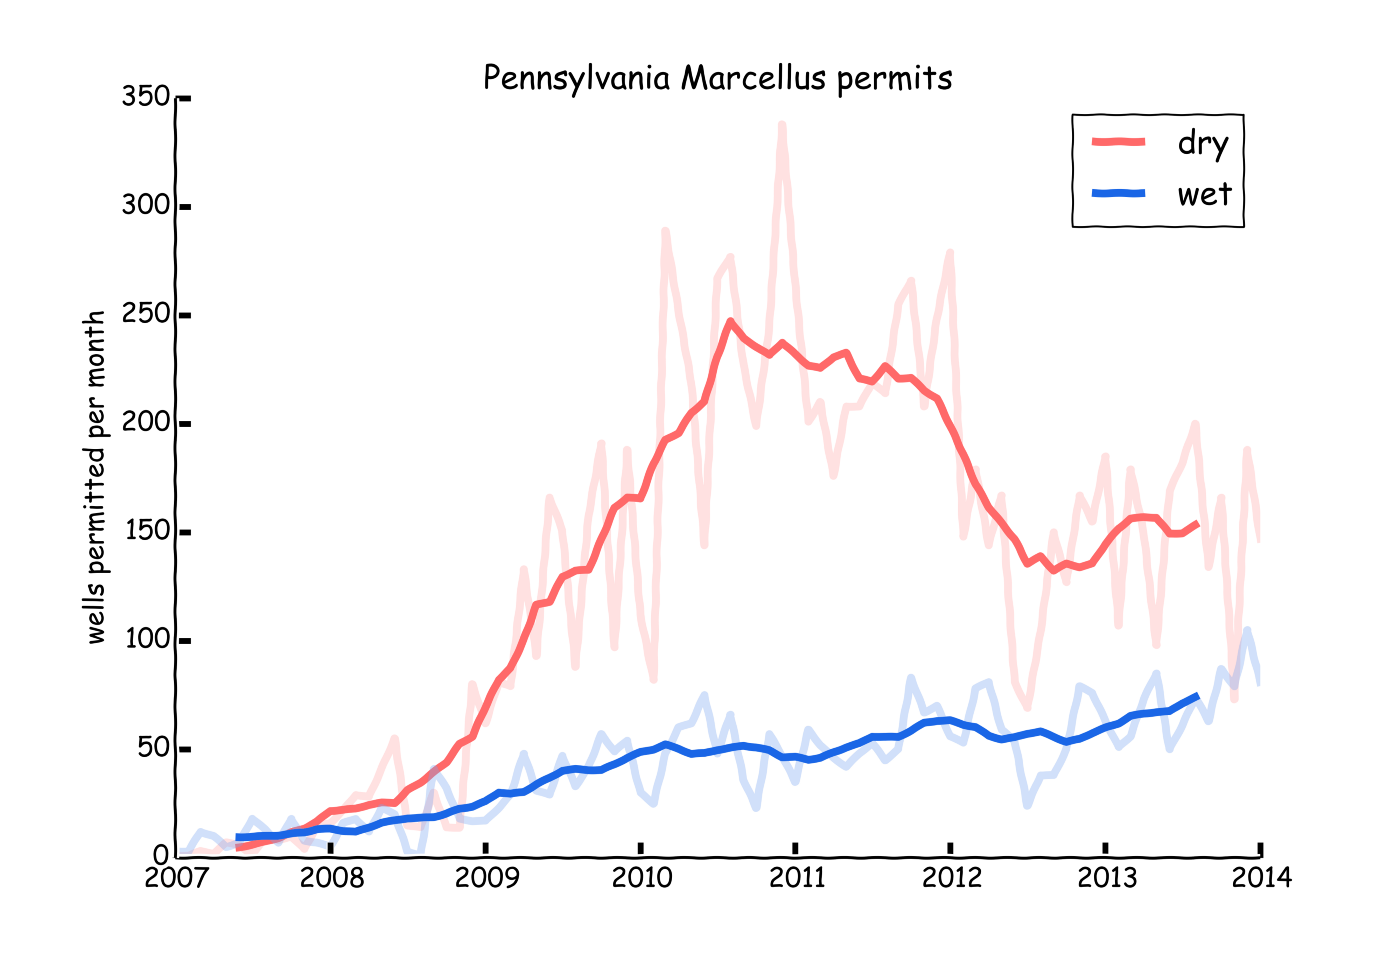 Is the Marcellus all wet now? - Mason Inman - Medium